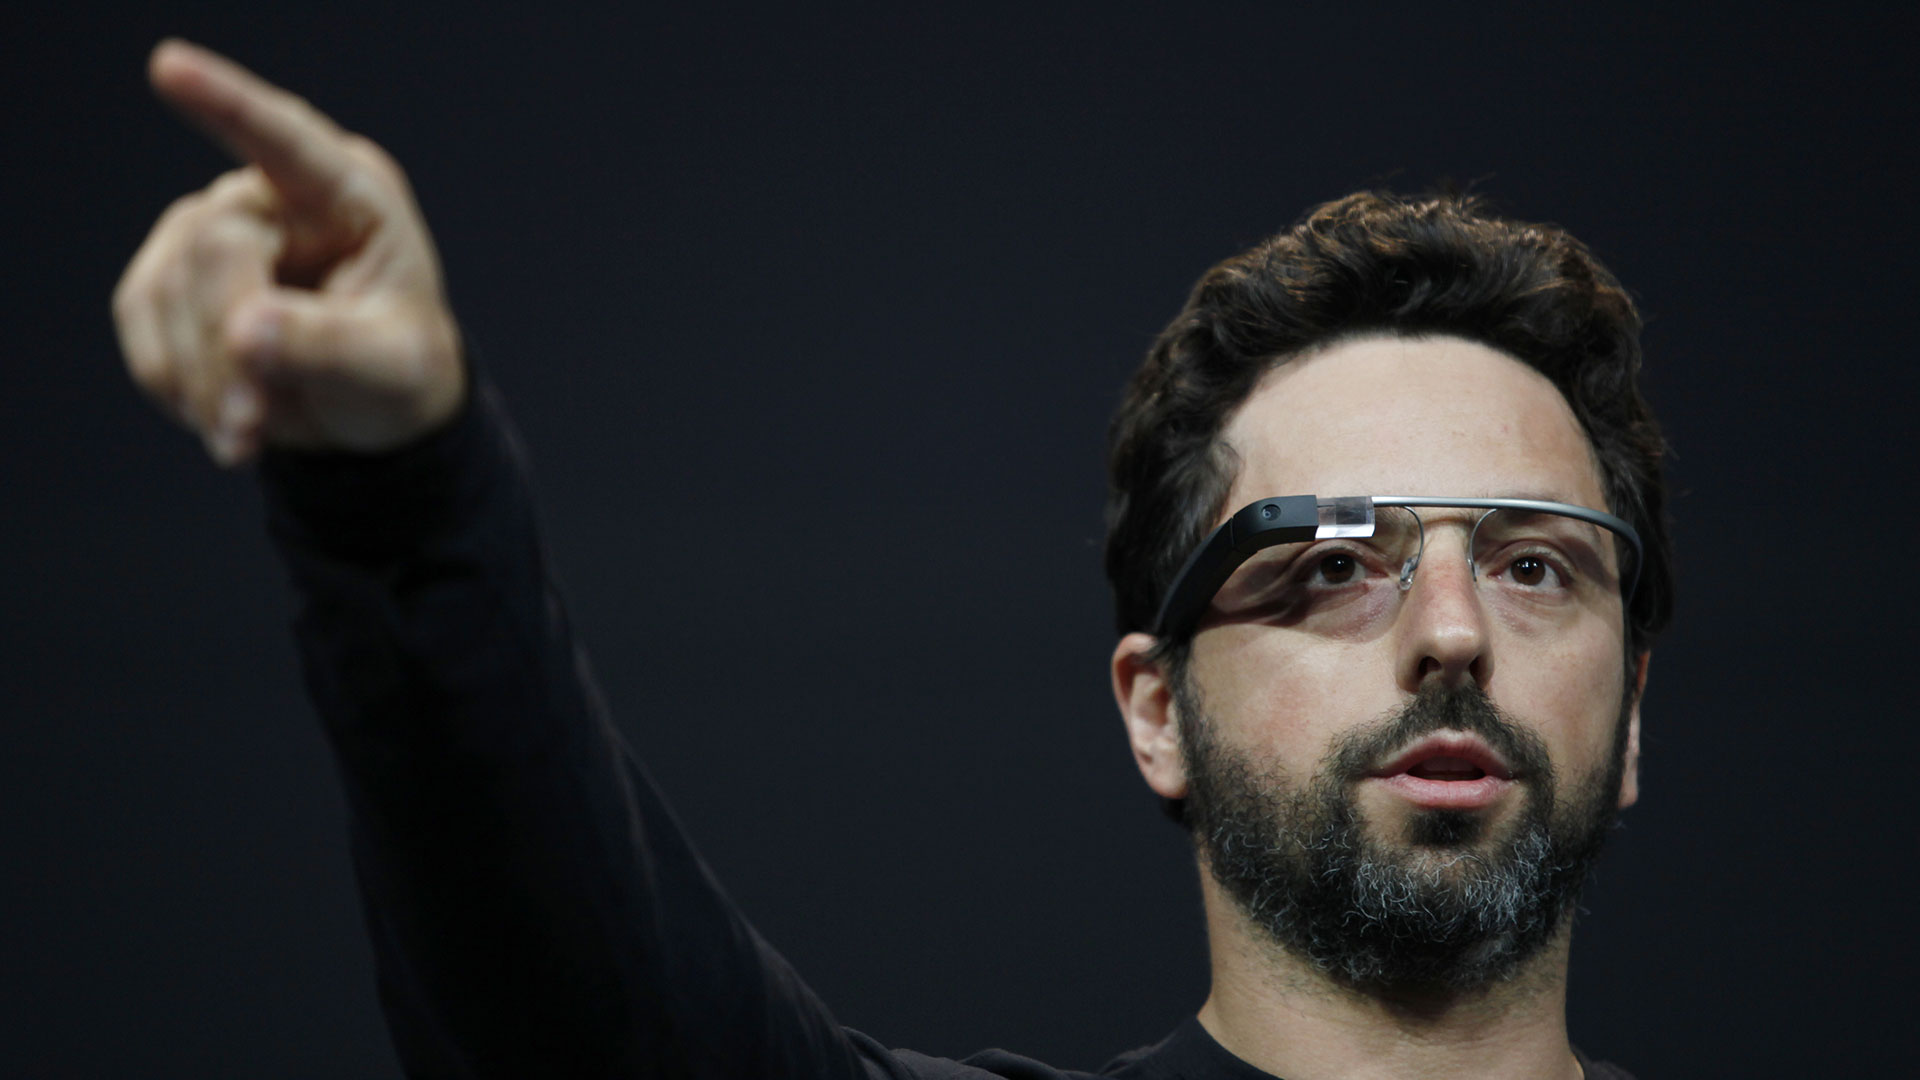 Sergey Brin google glass 12   Weekend Edition Weekend Edition 1920x1080